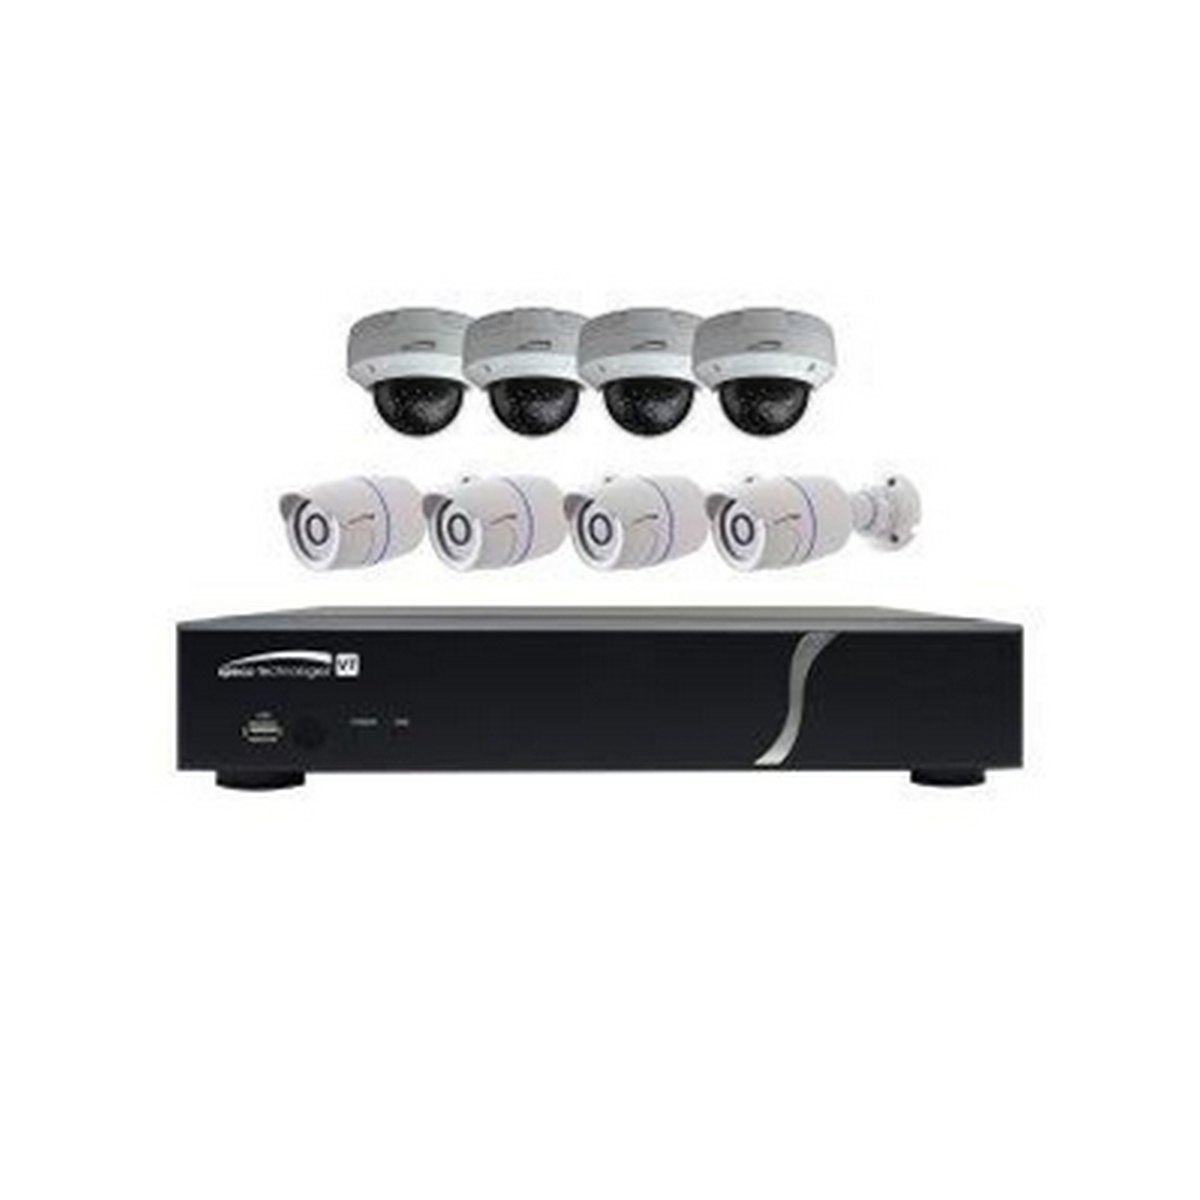 8CH HD-TVI DVR, 1080p, 120fps, 2TB w/ 4 Outdoor IR Bullet  & 4 Outdoor IR Dome, 2.8mm lens, Whi